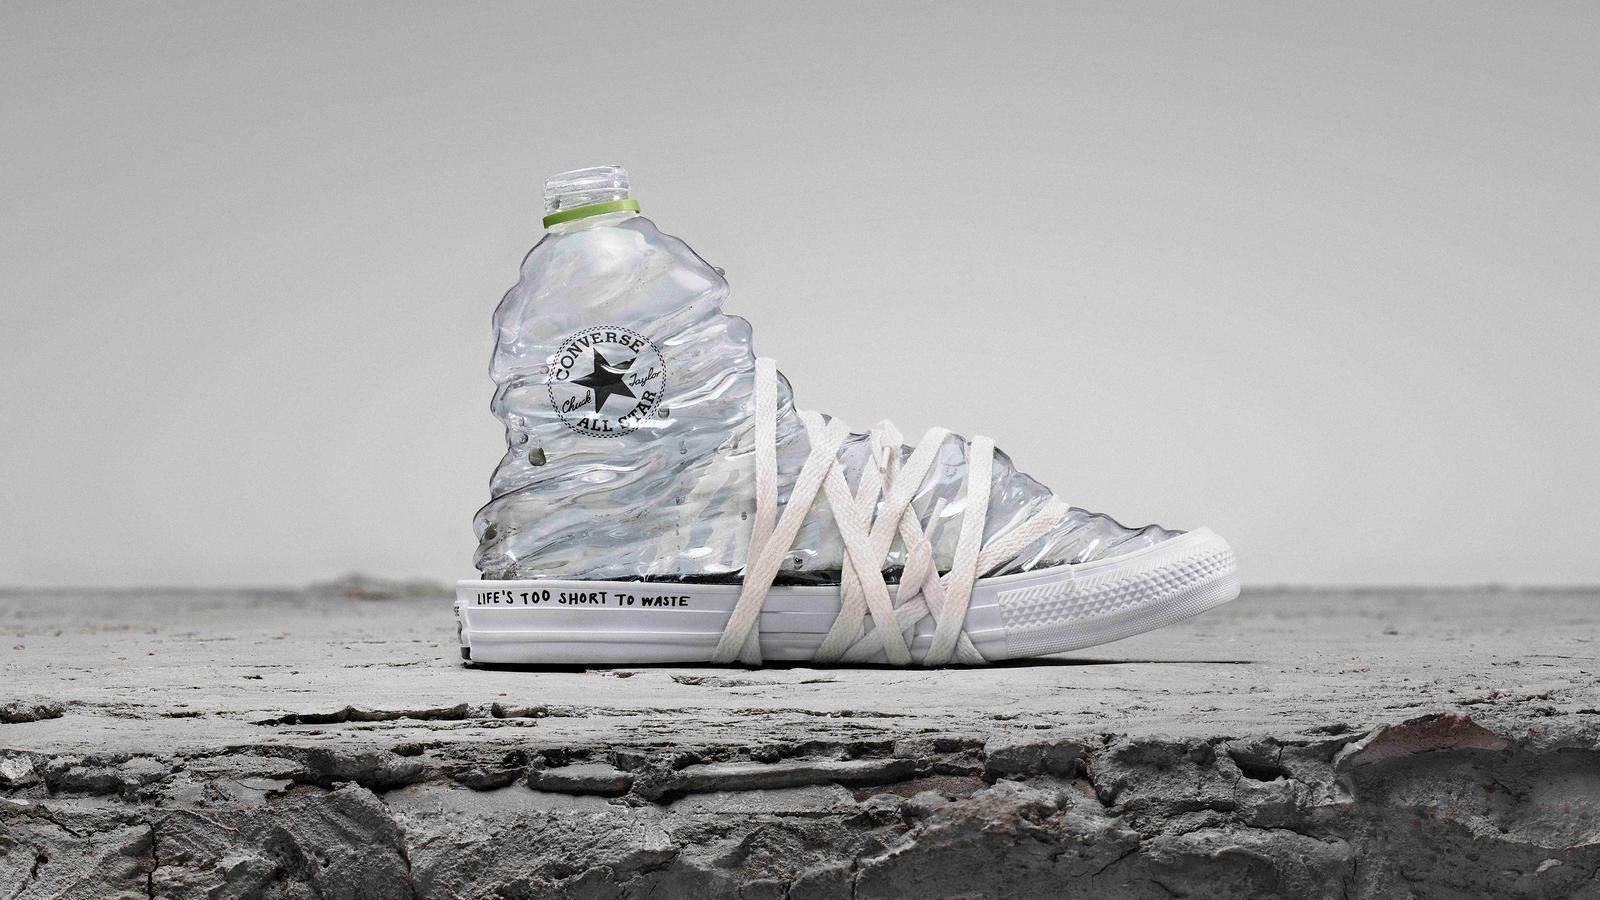 converse-sustainable-chuck-taylor-renew-initiative